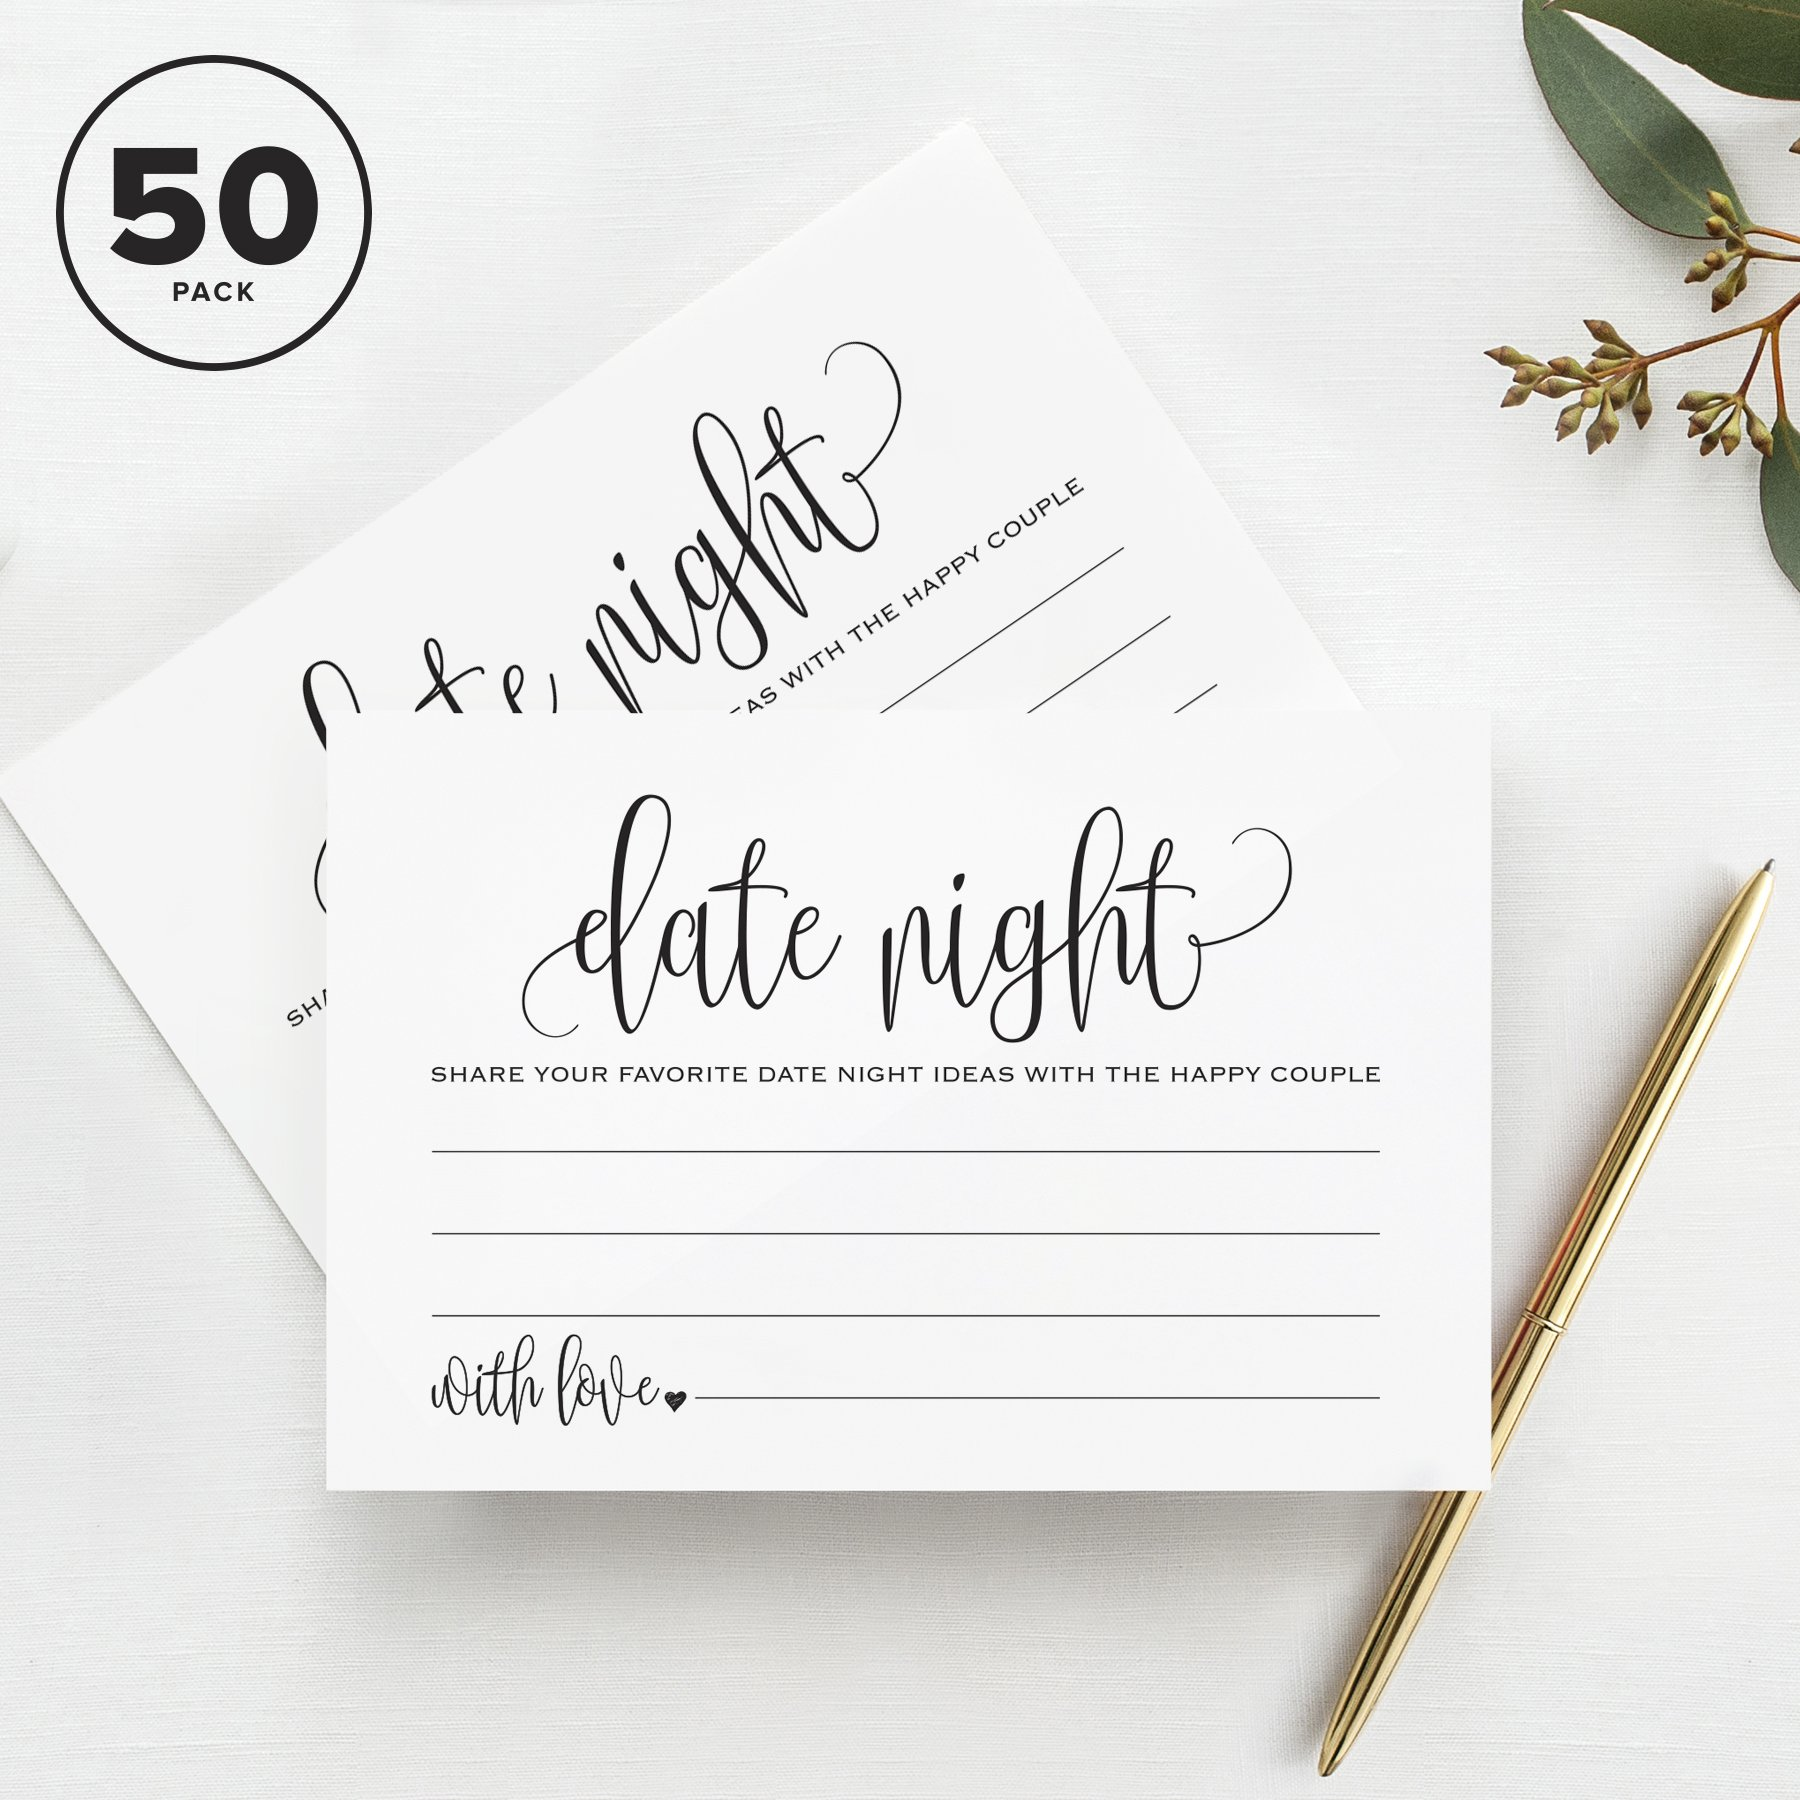 Date Night Ideas Cards, For Bridal Shower, Married Couples, Bride and Groom — Pack of 50 4x6 Cards from Bliss Paper Boutique by Bliss Paper Boutique